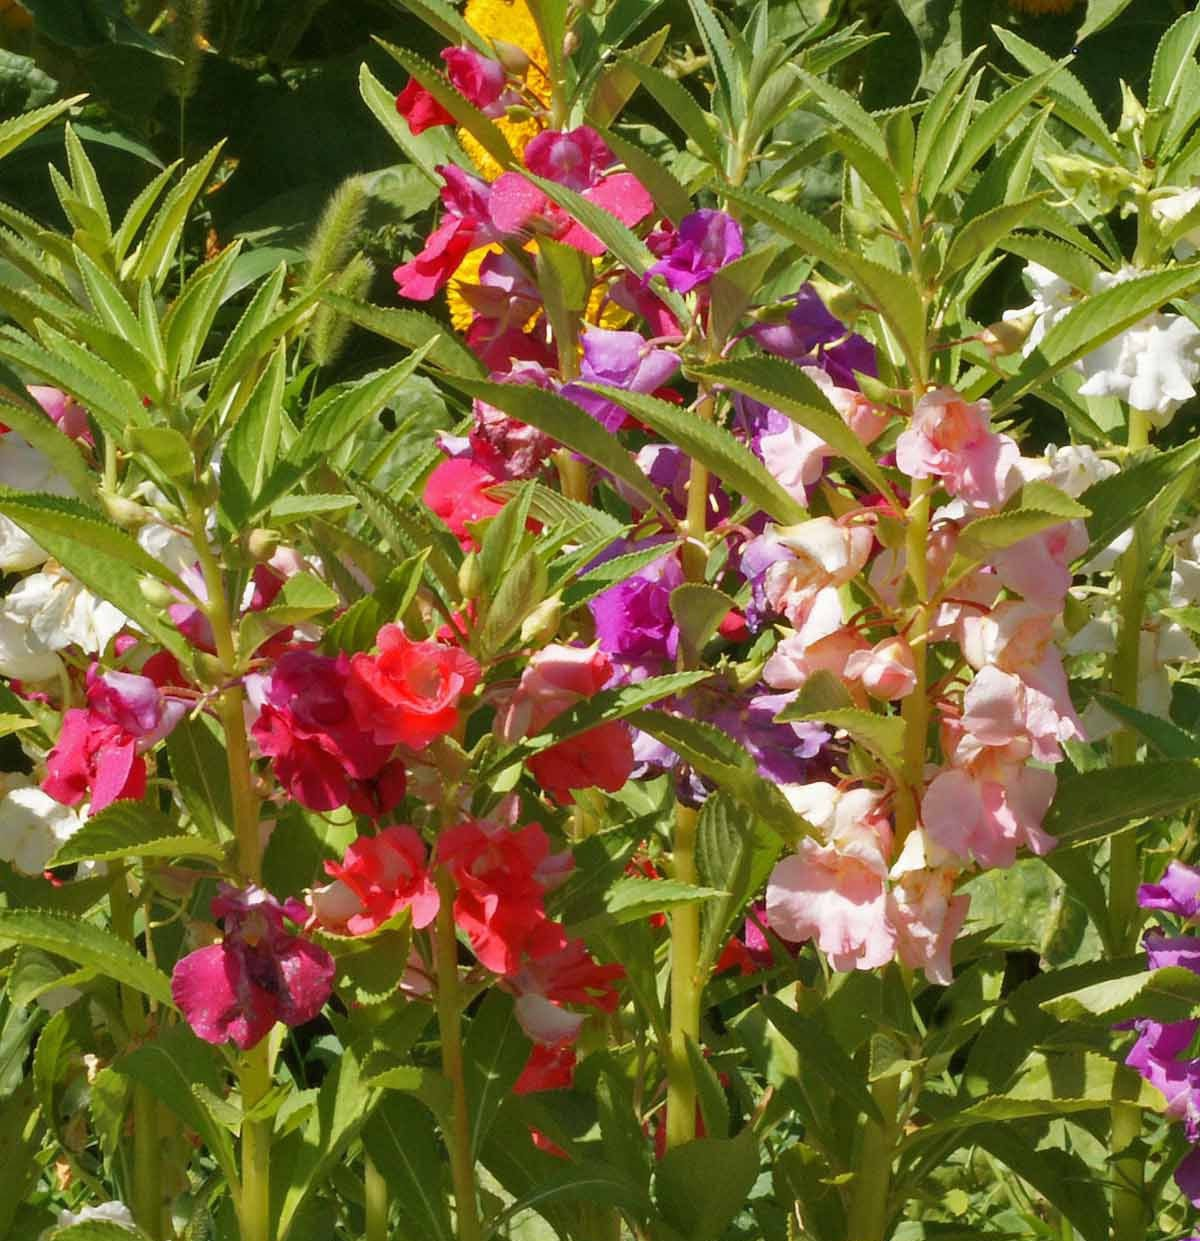 Dwarf Balsam Tom Thumb Mix 50 seeds Impatiens balsamina * Easy Grow * *SHIPPING FROM US* CombSH A61